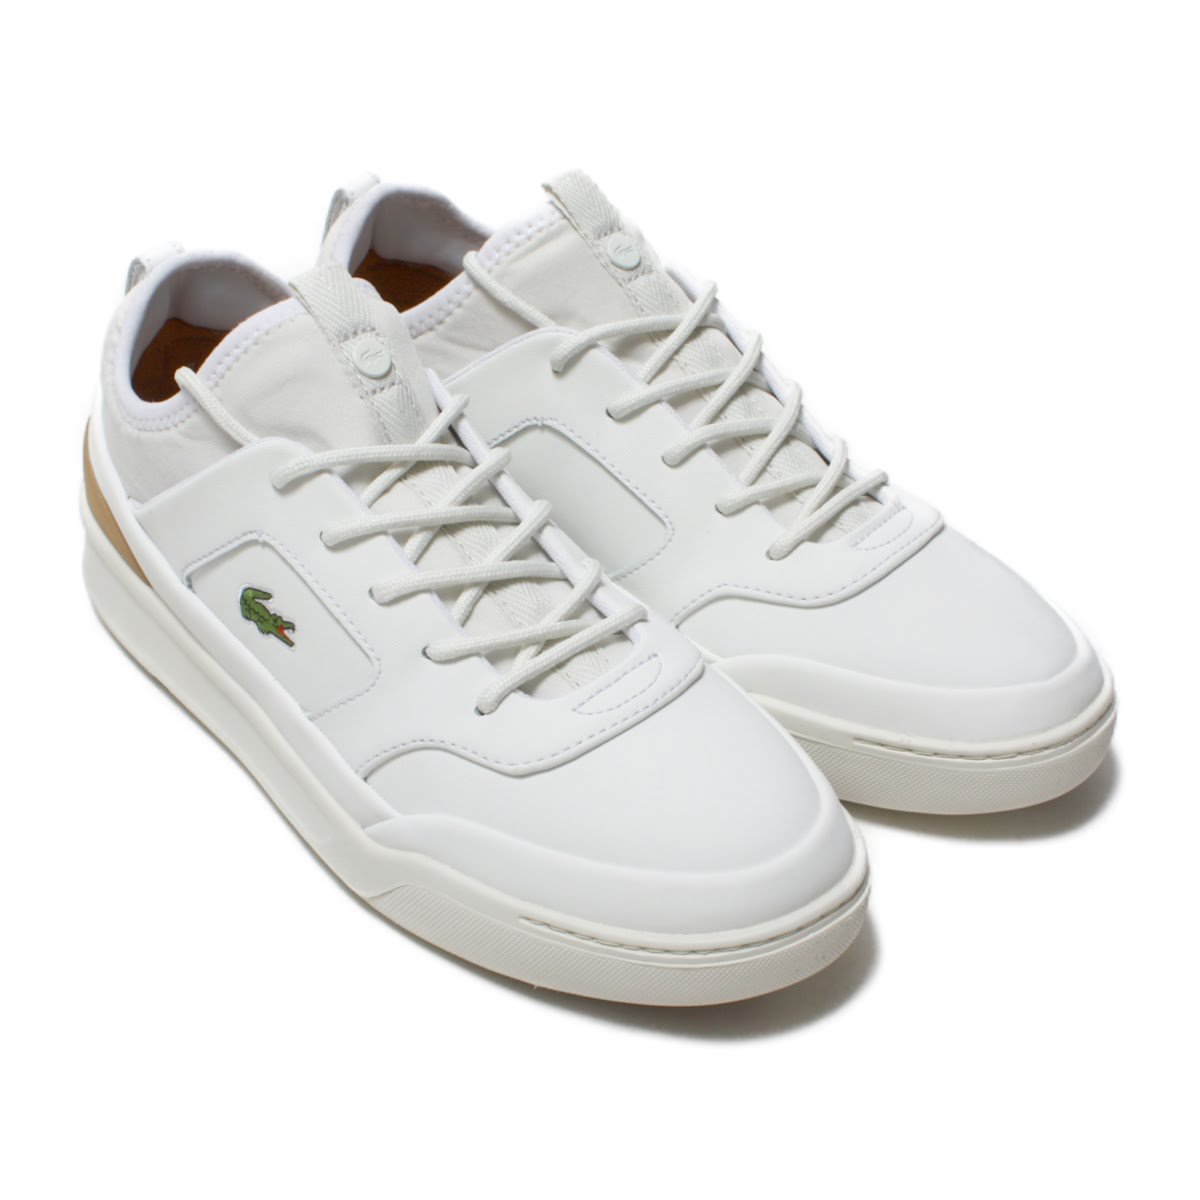 LACOSTE EXPLORATEUR CRFT SP 118 1(ラコステ エクスプロラトゥール クラフト SP 118 1)WHT/LT TAN【メンズ スニーカー】18SP-I